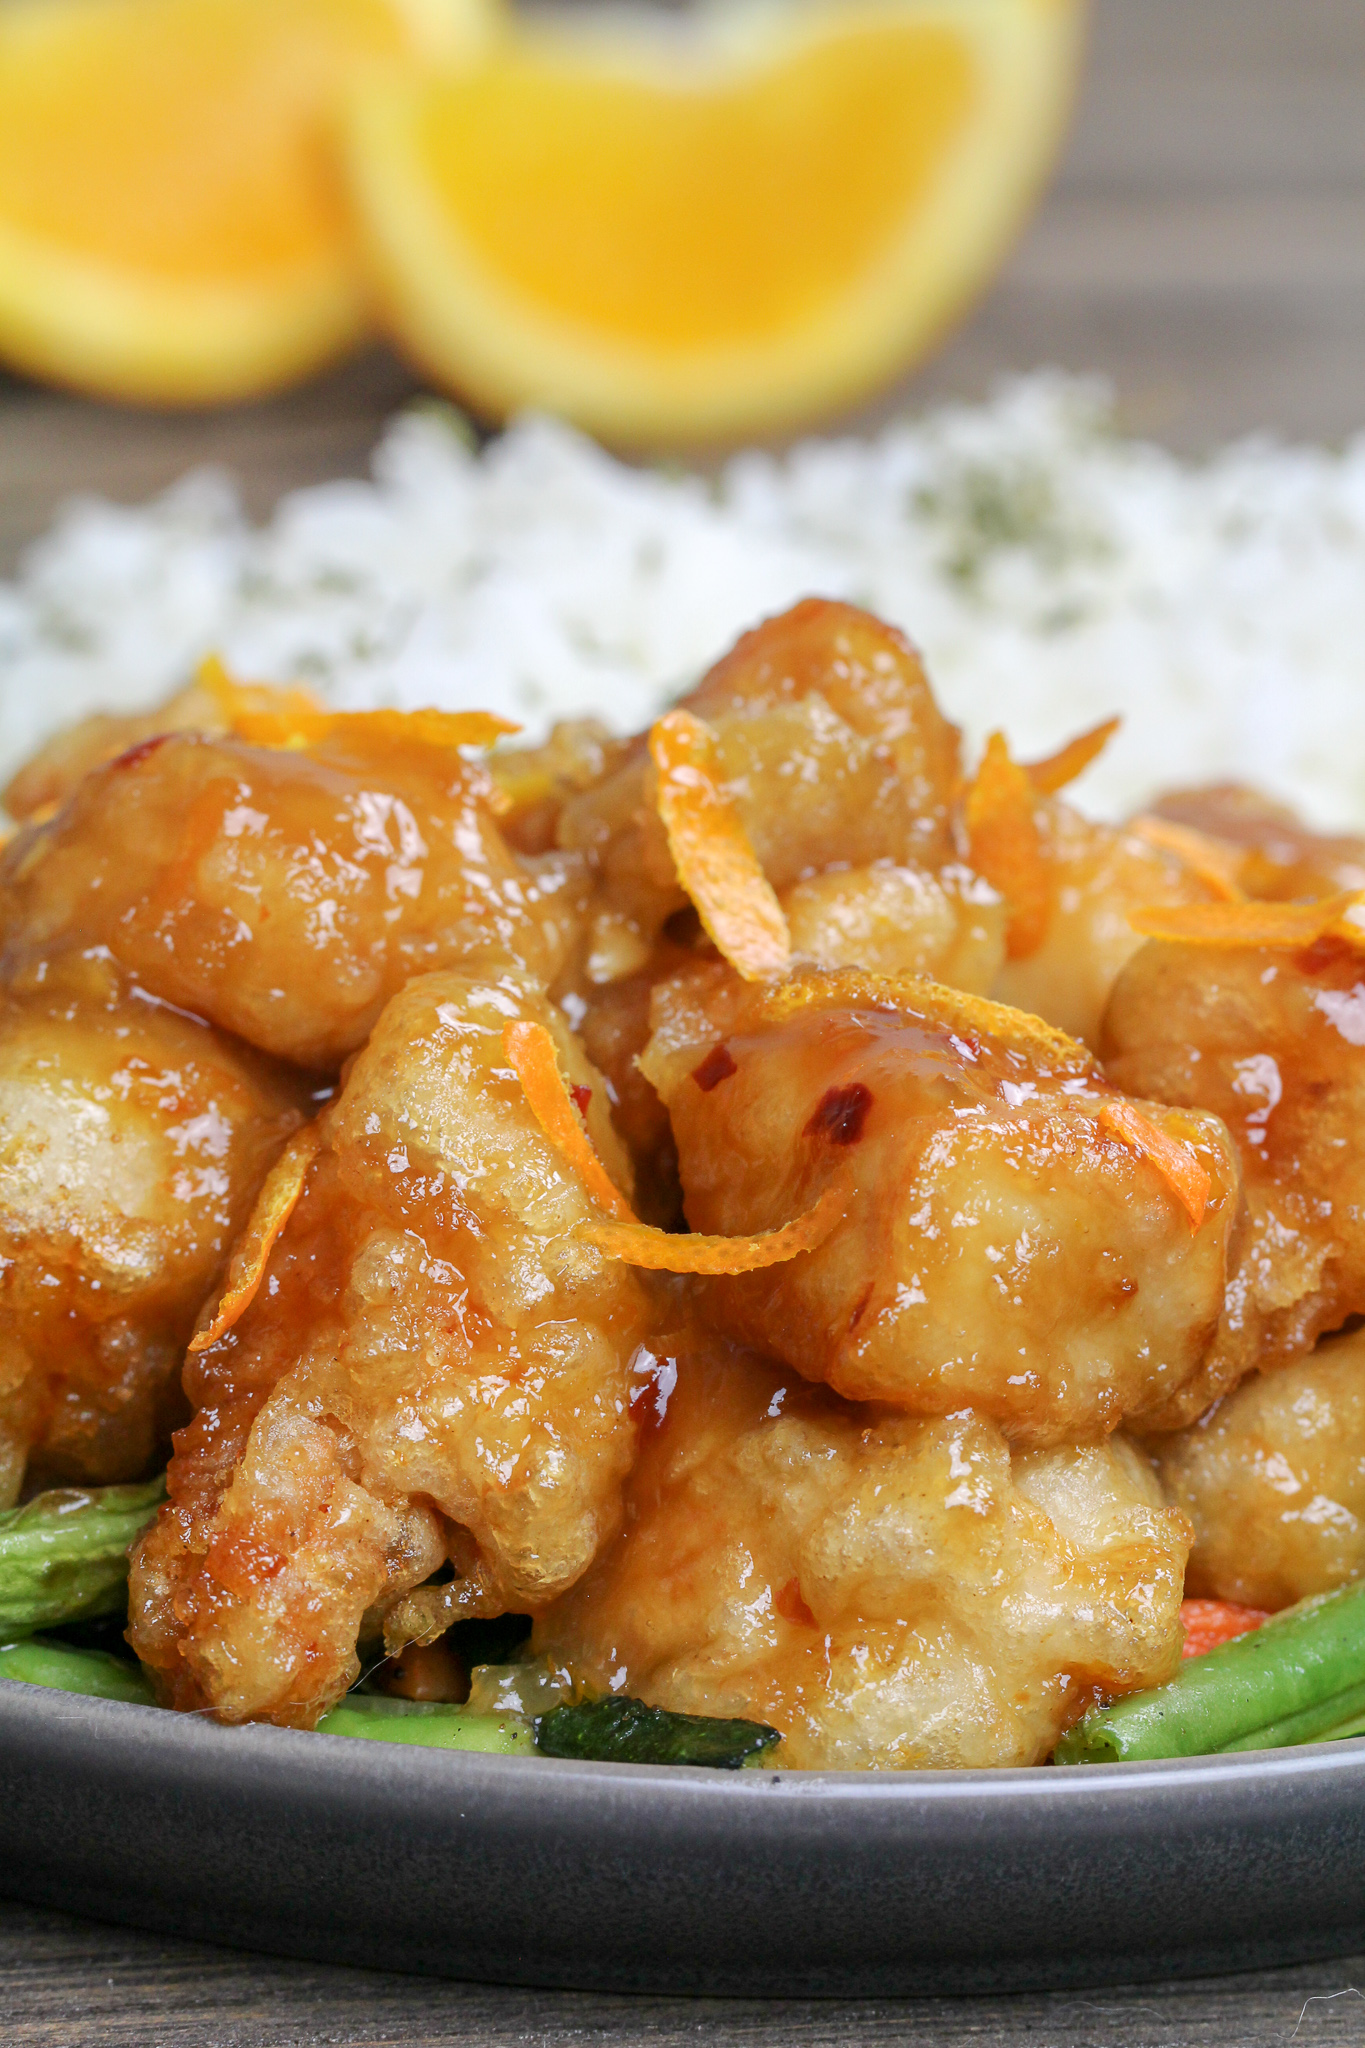 Cheesecake Factory Orange Chicken Copycat Recipe